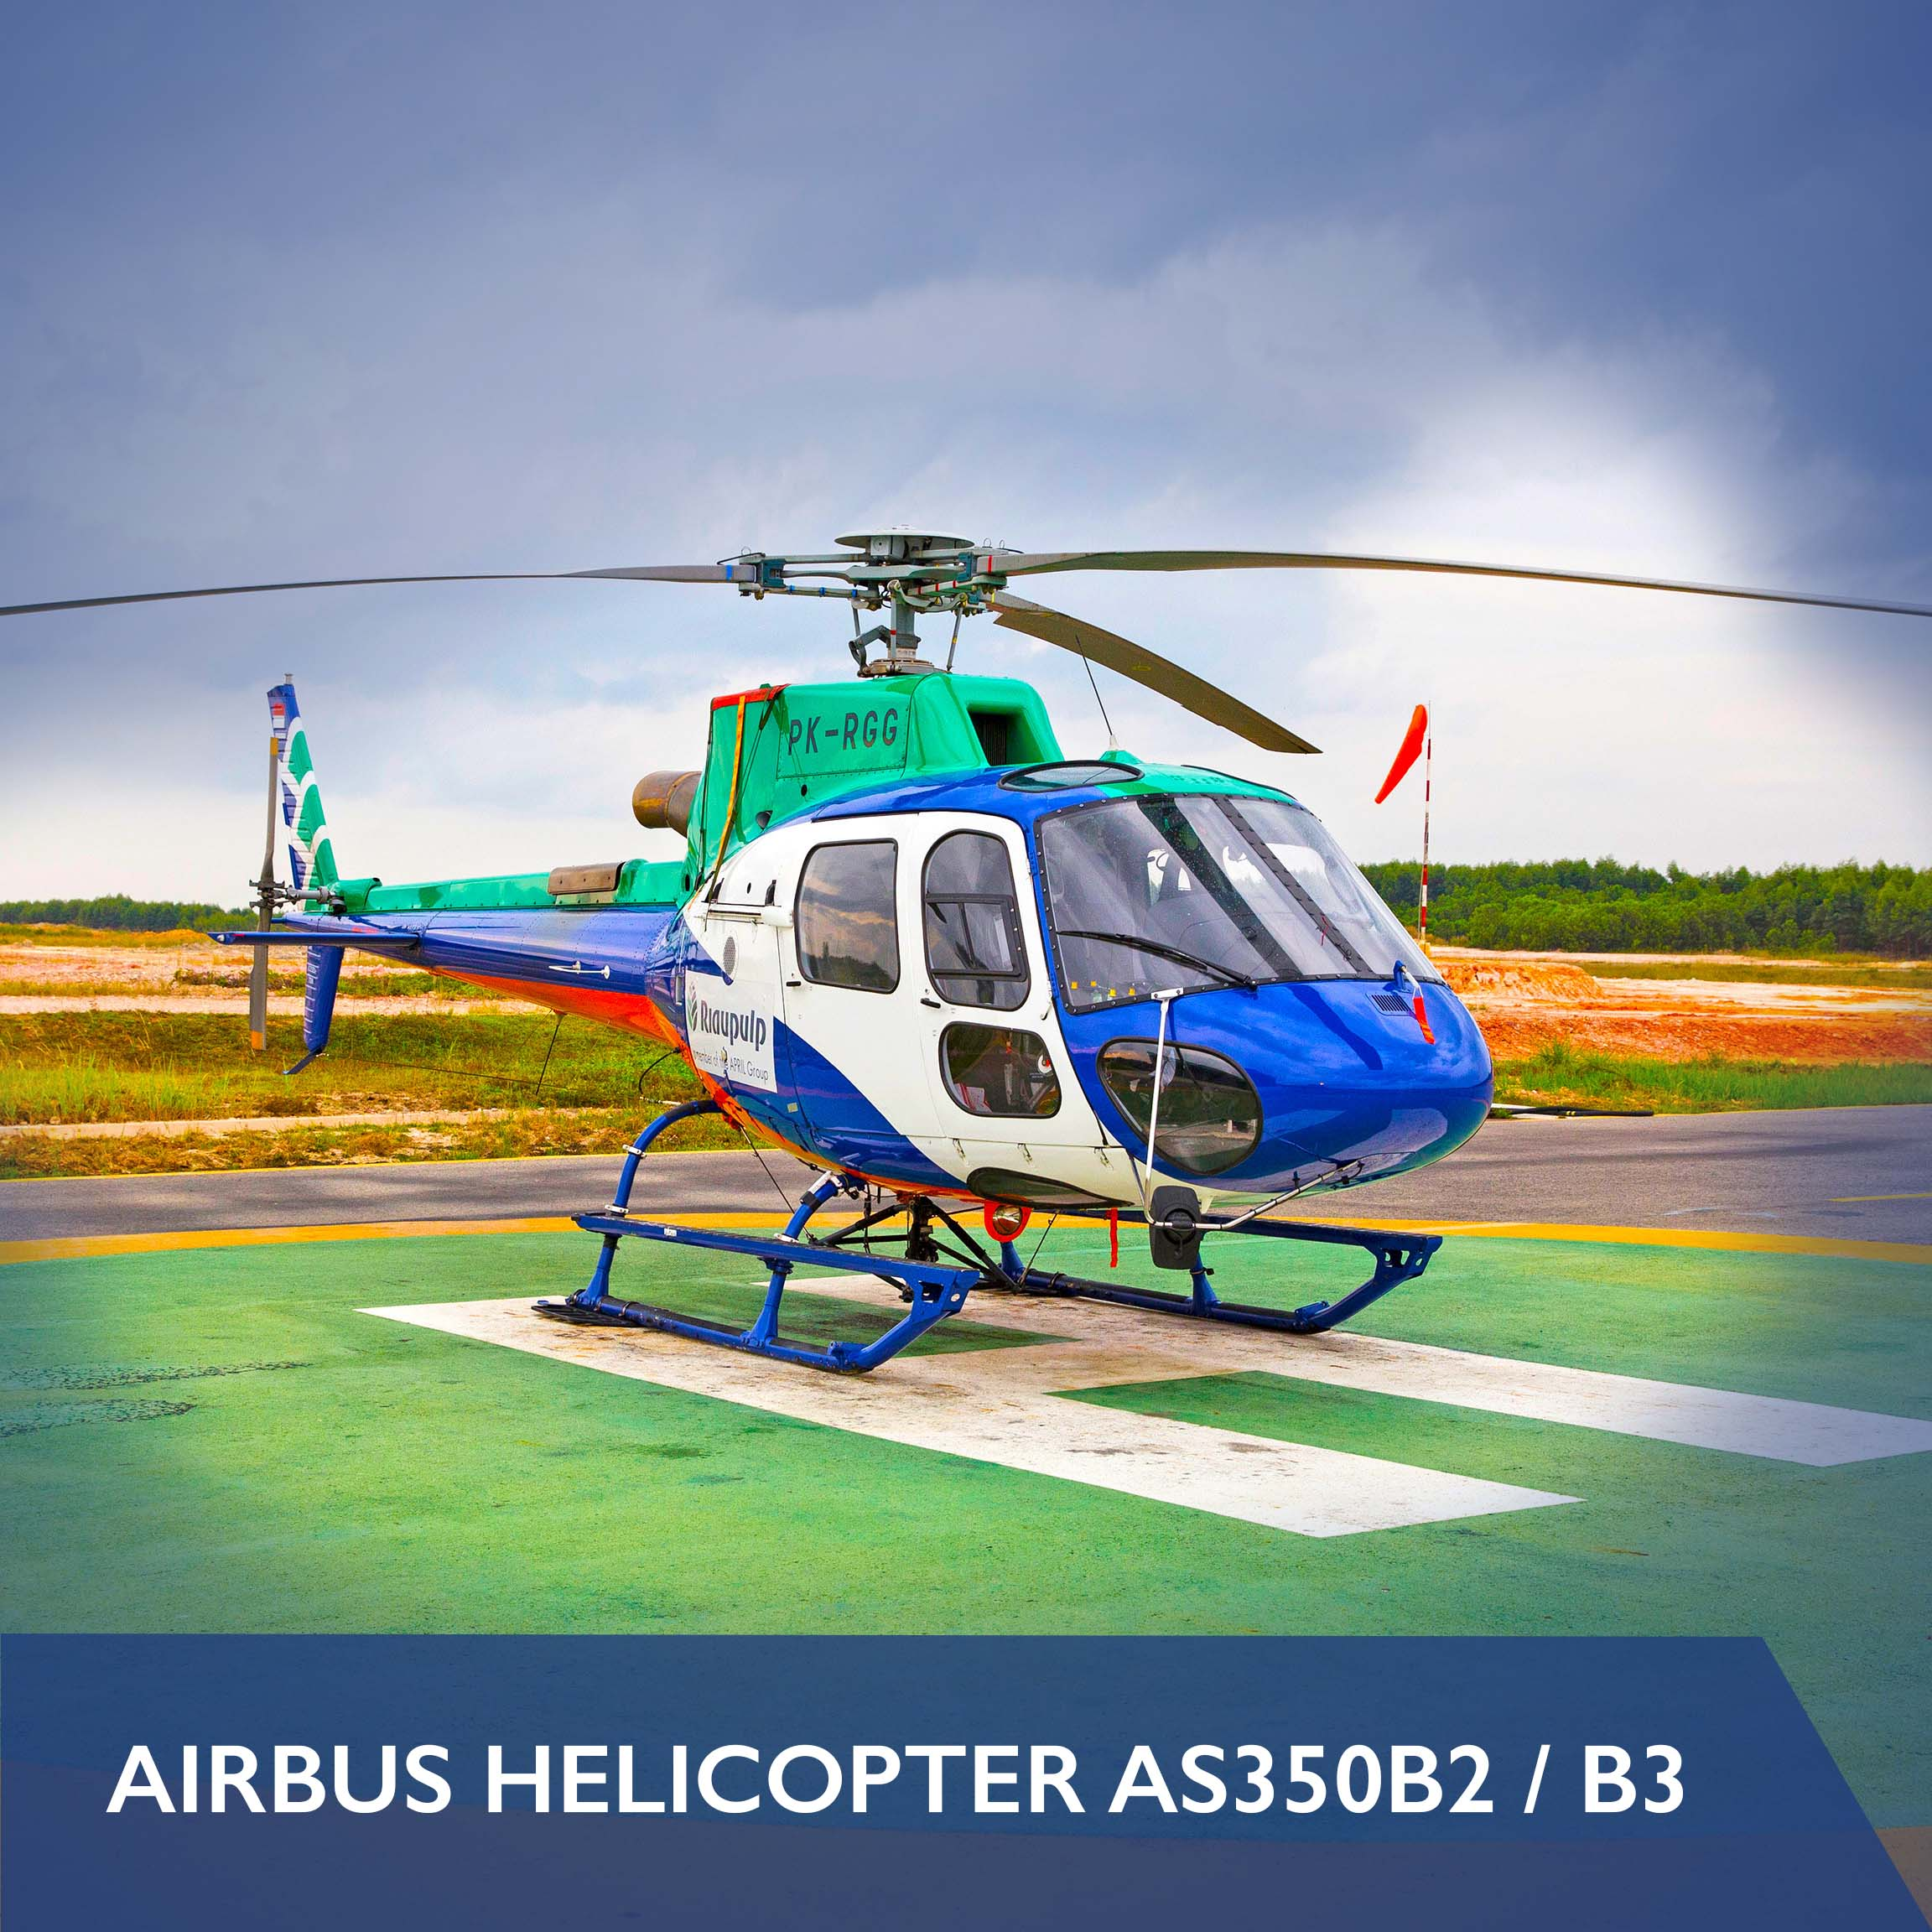 airbus-helicopter-image-box